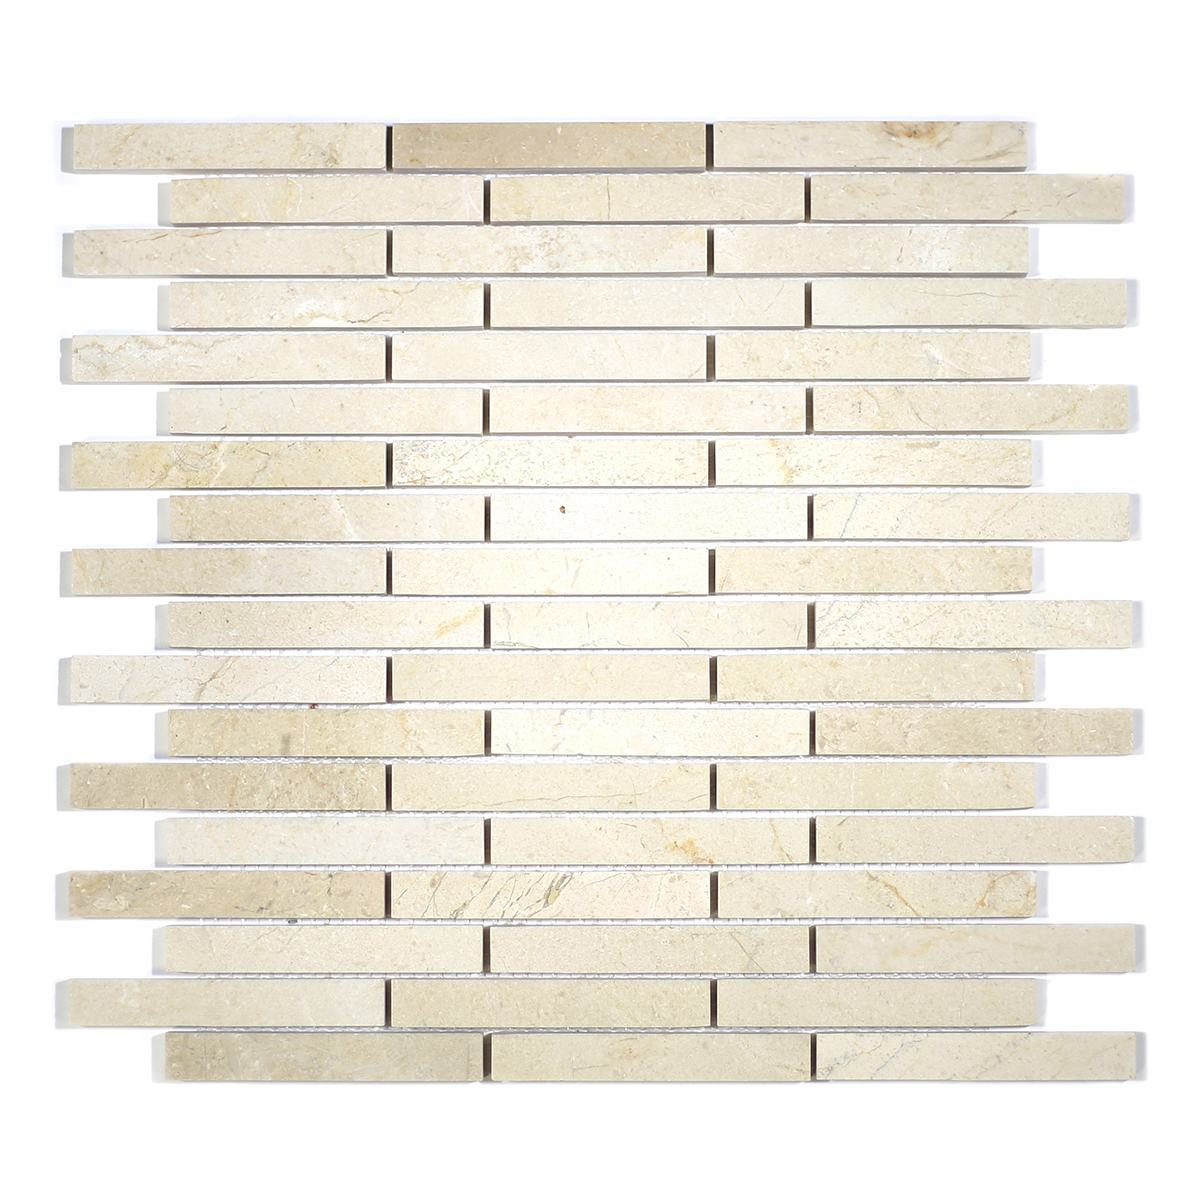 MA210-ST  5/8 Crema Marfil Strips with space polished